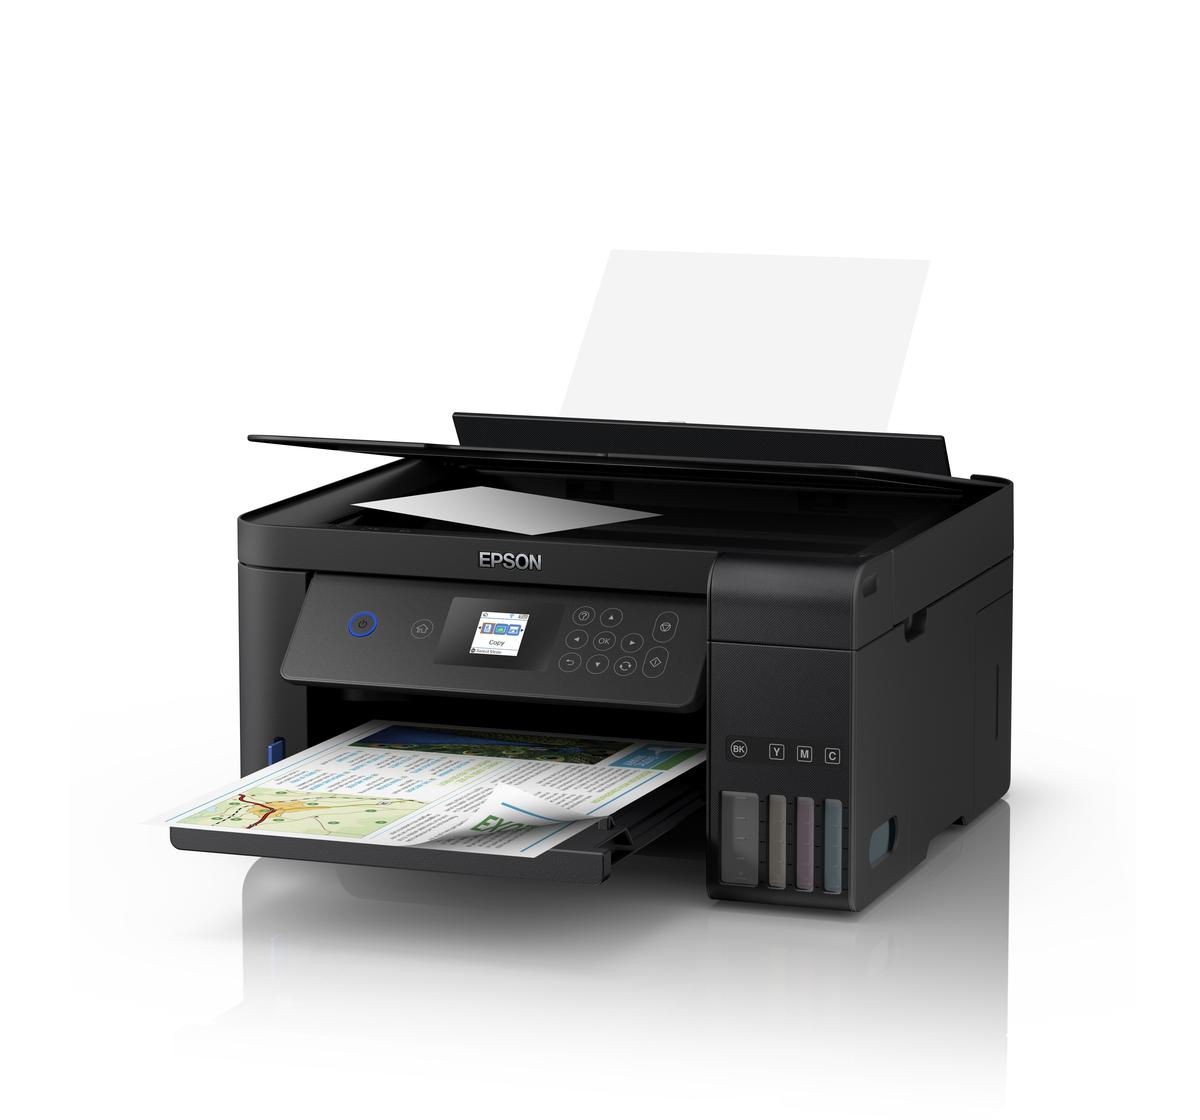 Buy Epson Printers Accessories At Best Prices Online In Bangladesh Printer L310 L 310 L4160 Wi Fi Duplex All One Ink Tank